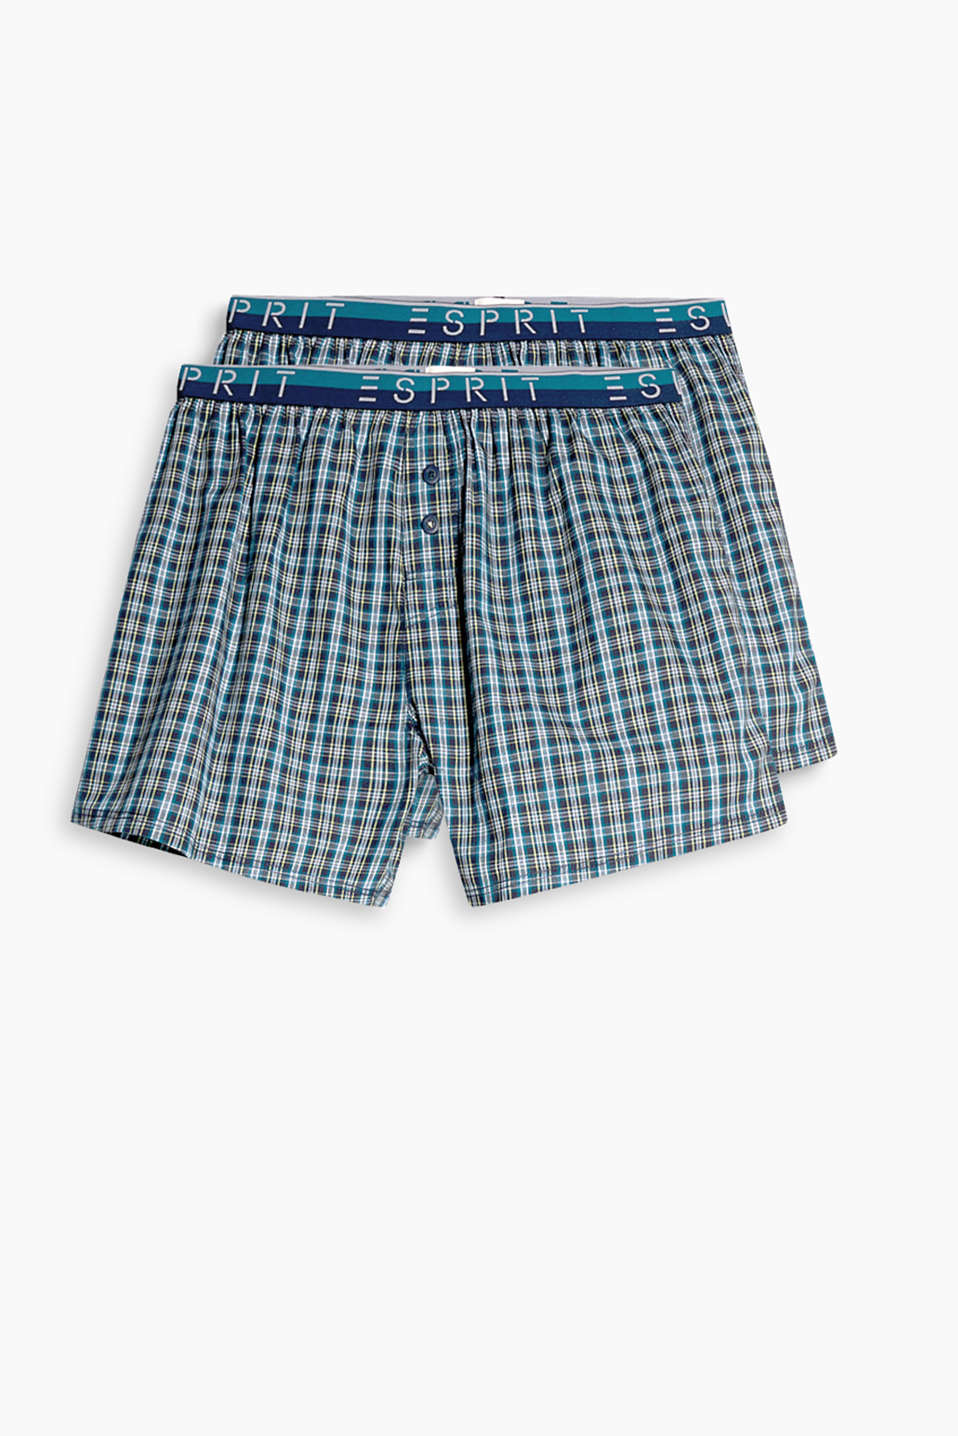 With a stylish glencheck pattern, elasticated waistband and logo label: pure cotton boxer shorts